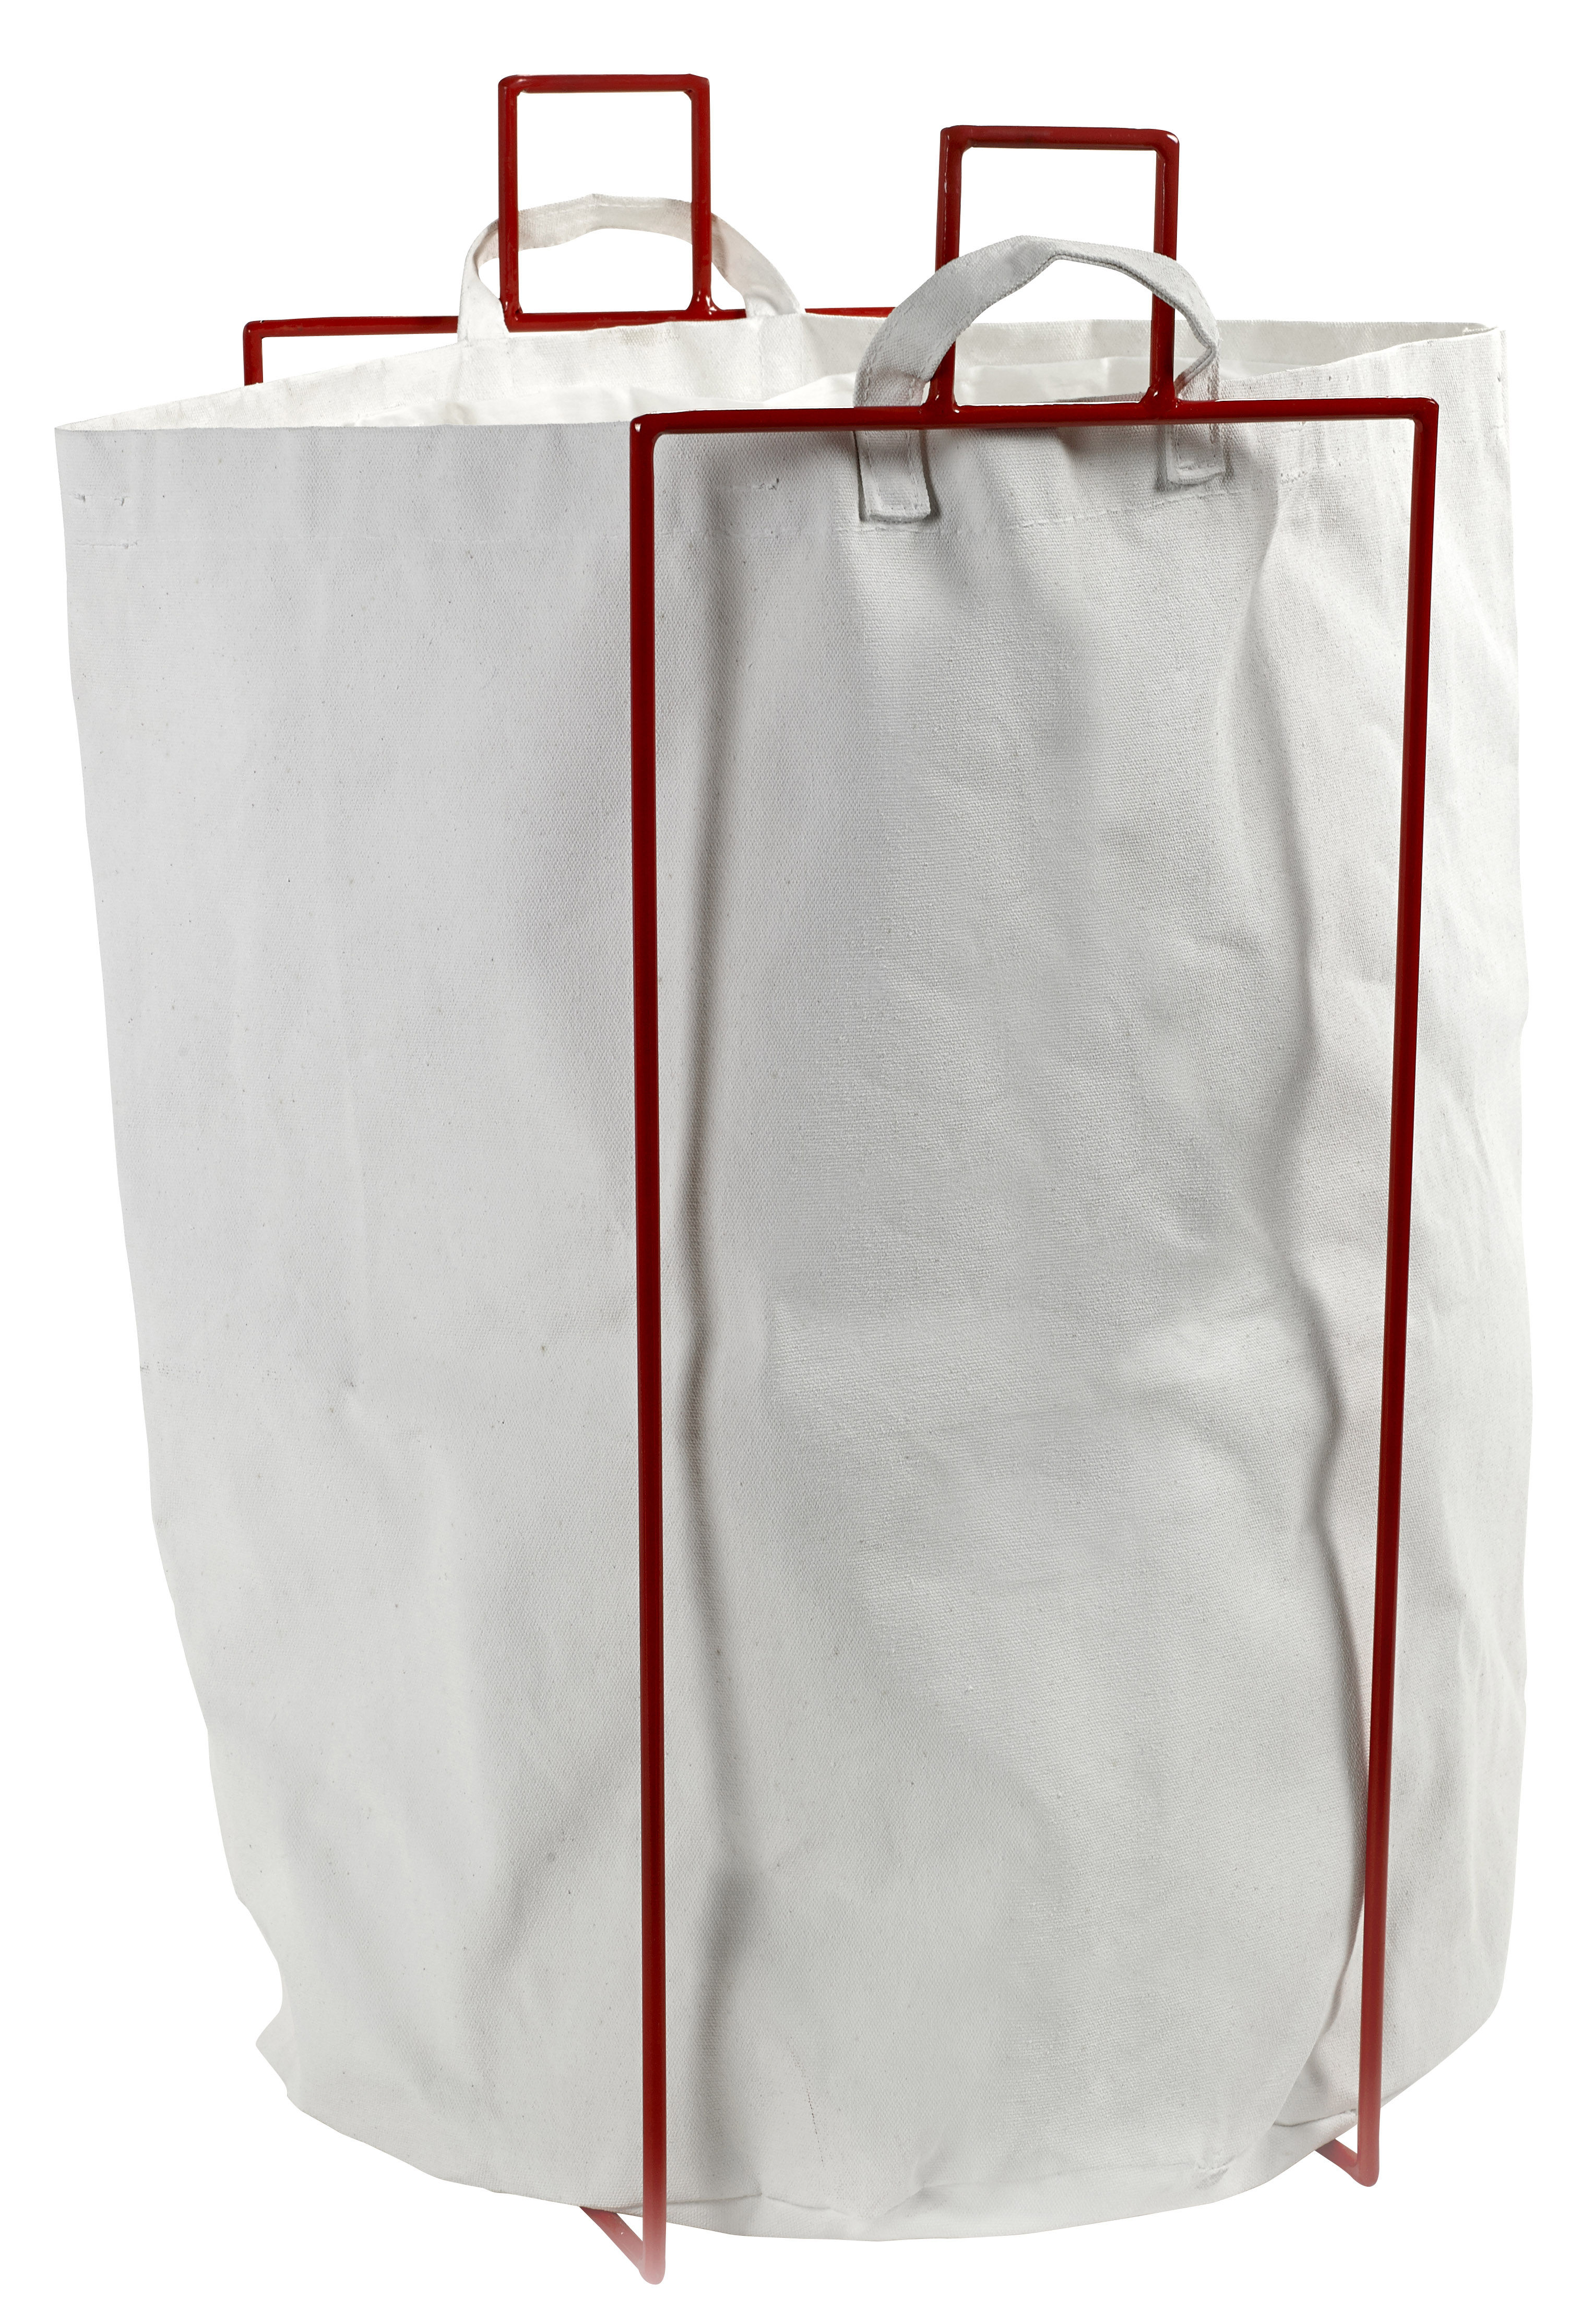 Accessories - Bathroom Accessories - Laundryholder Laundry basket - Removable bag by Serax - Red - Fabric, Metal